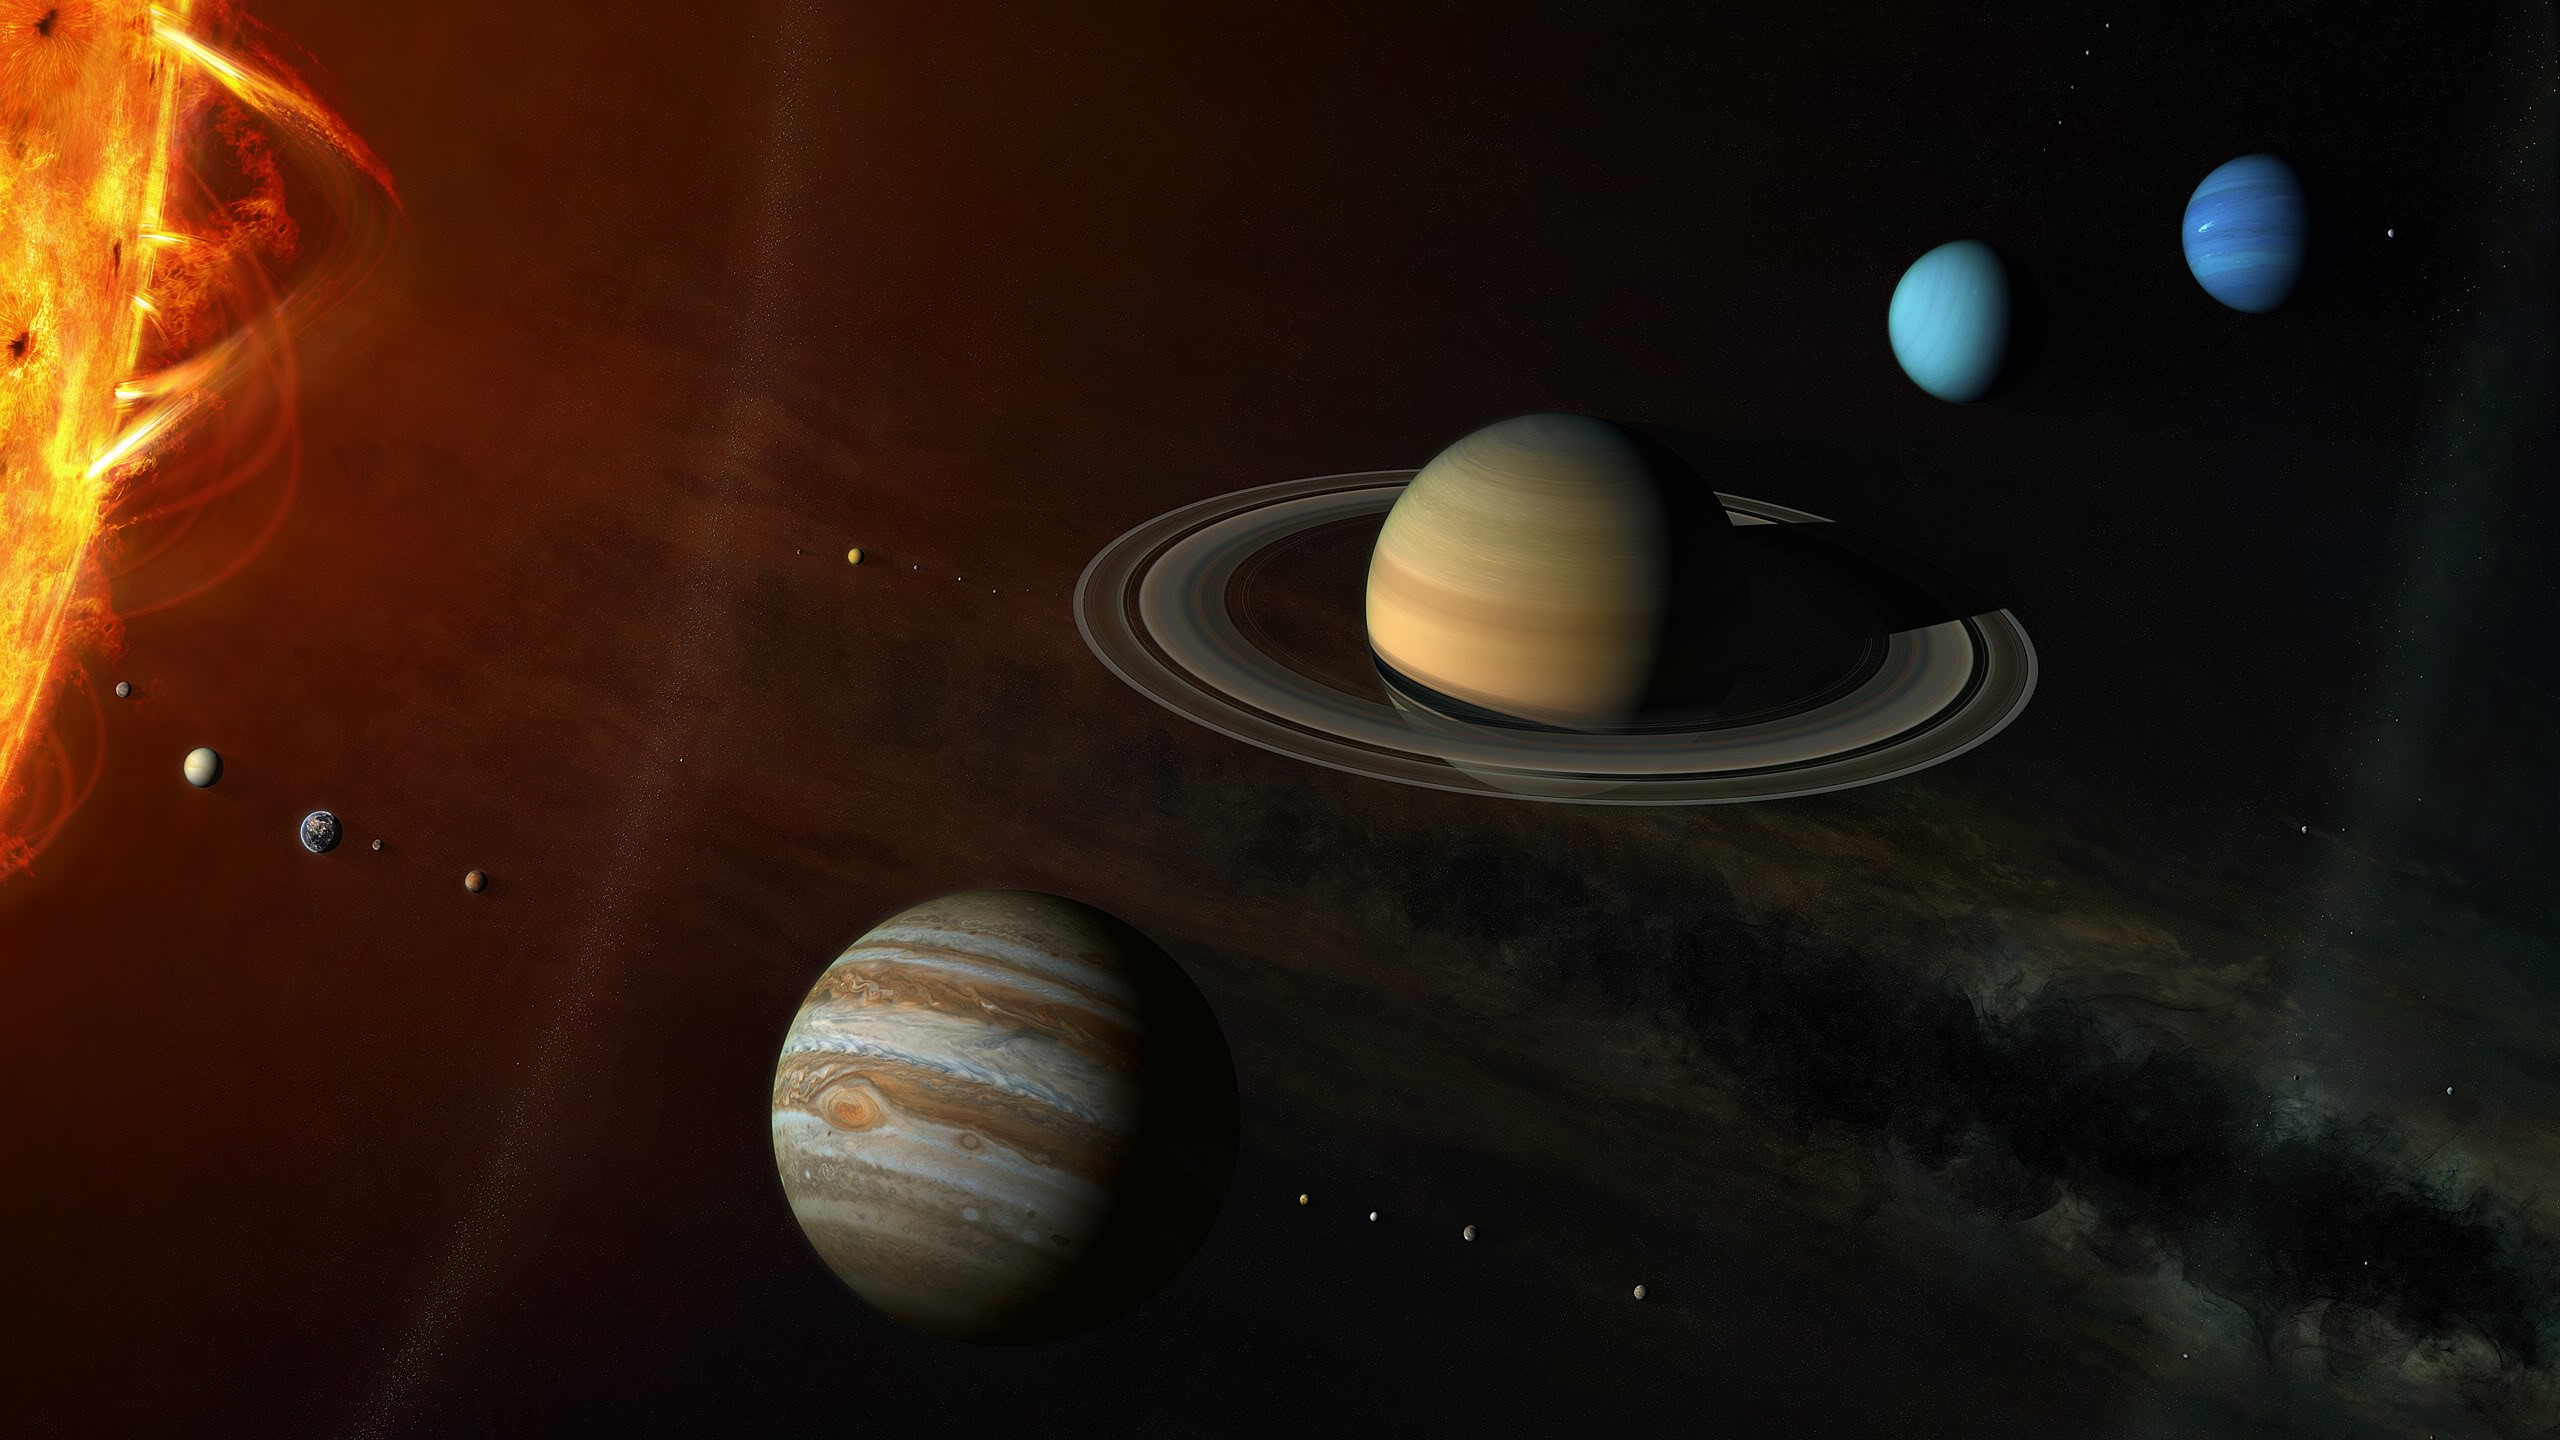 solar system pictures - HD2560×1440